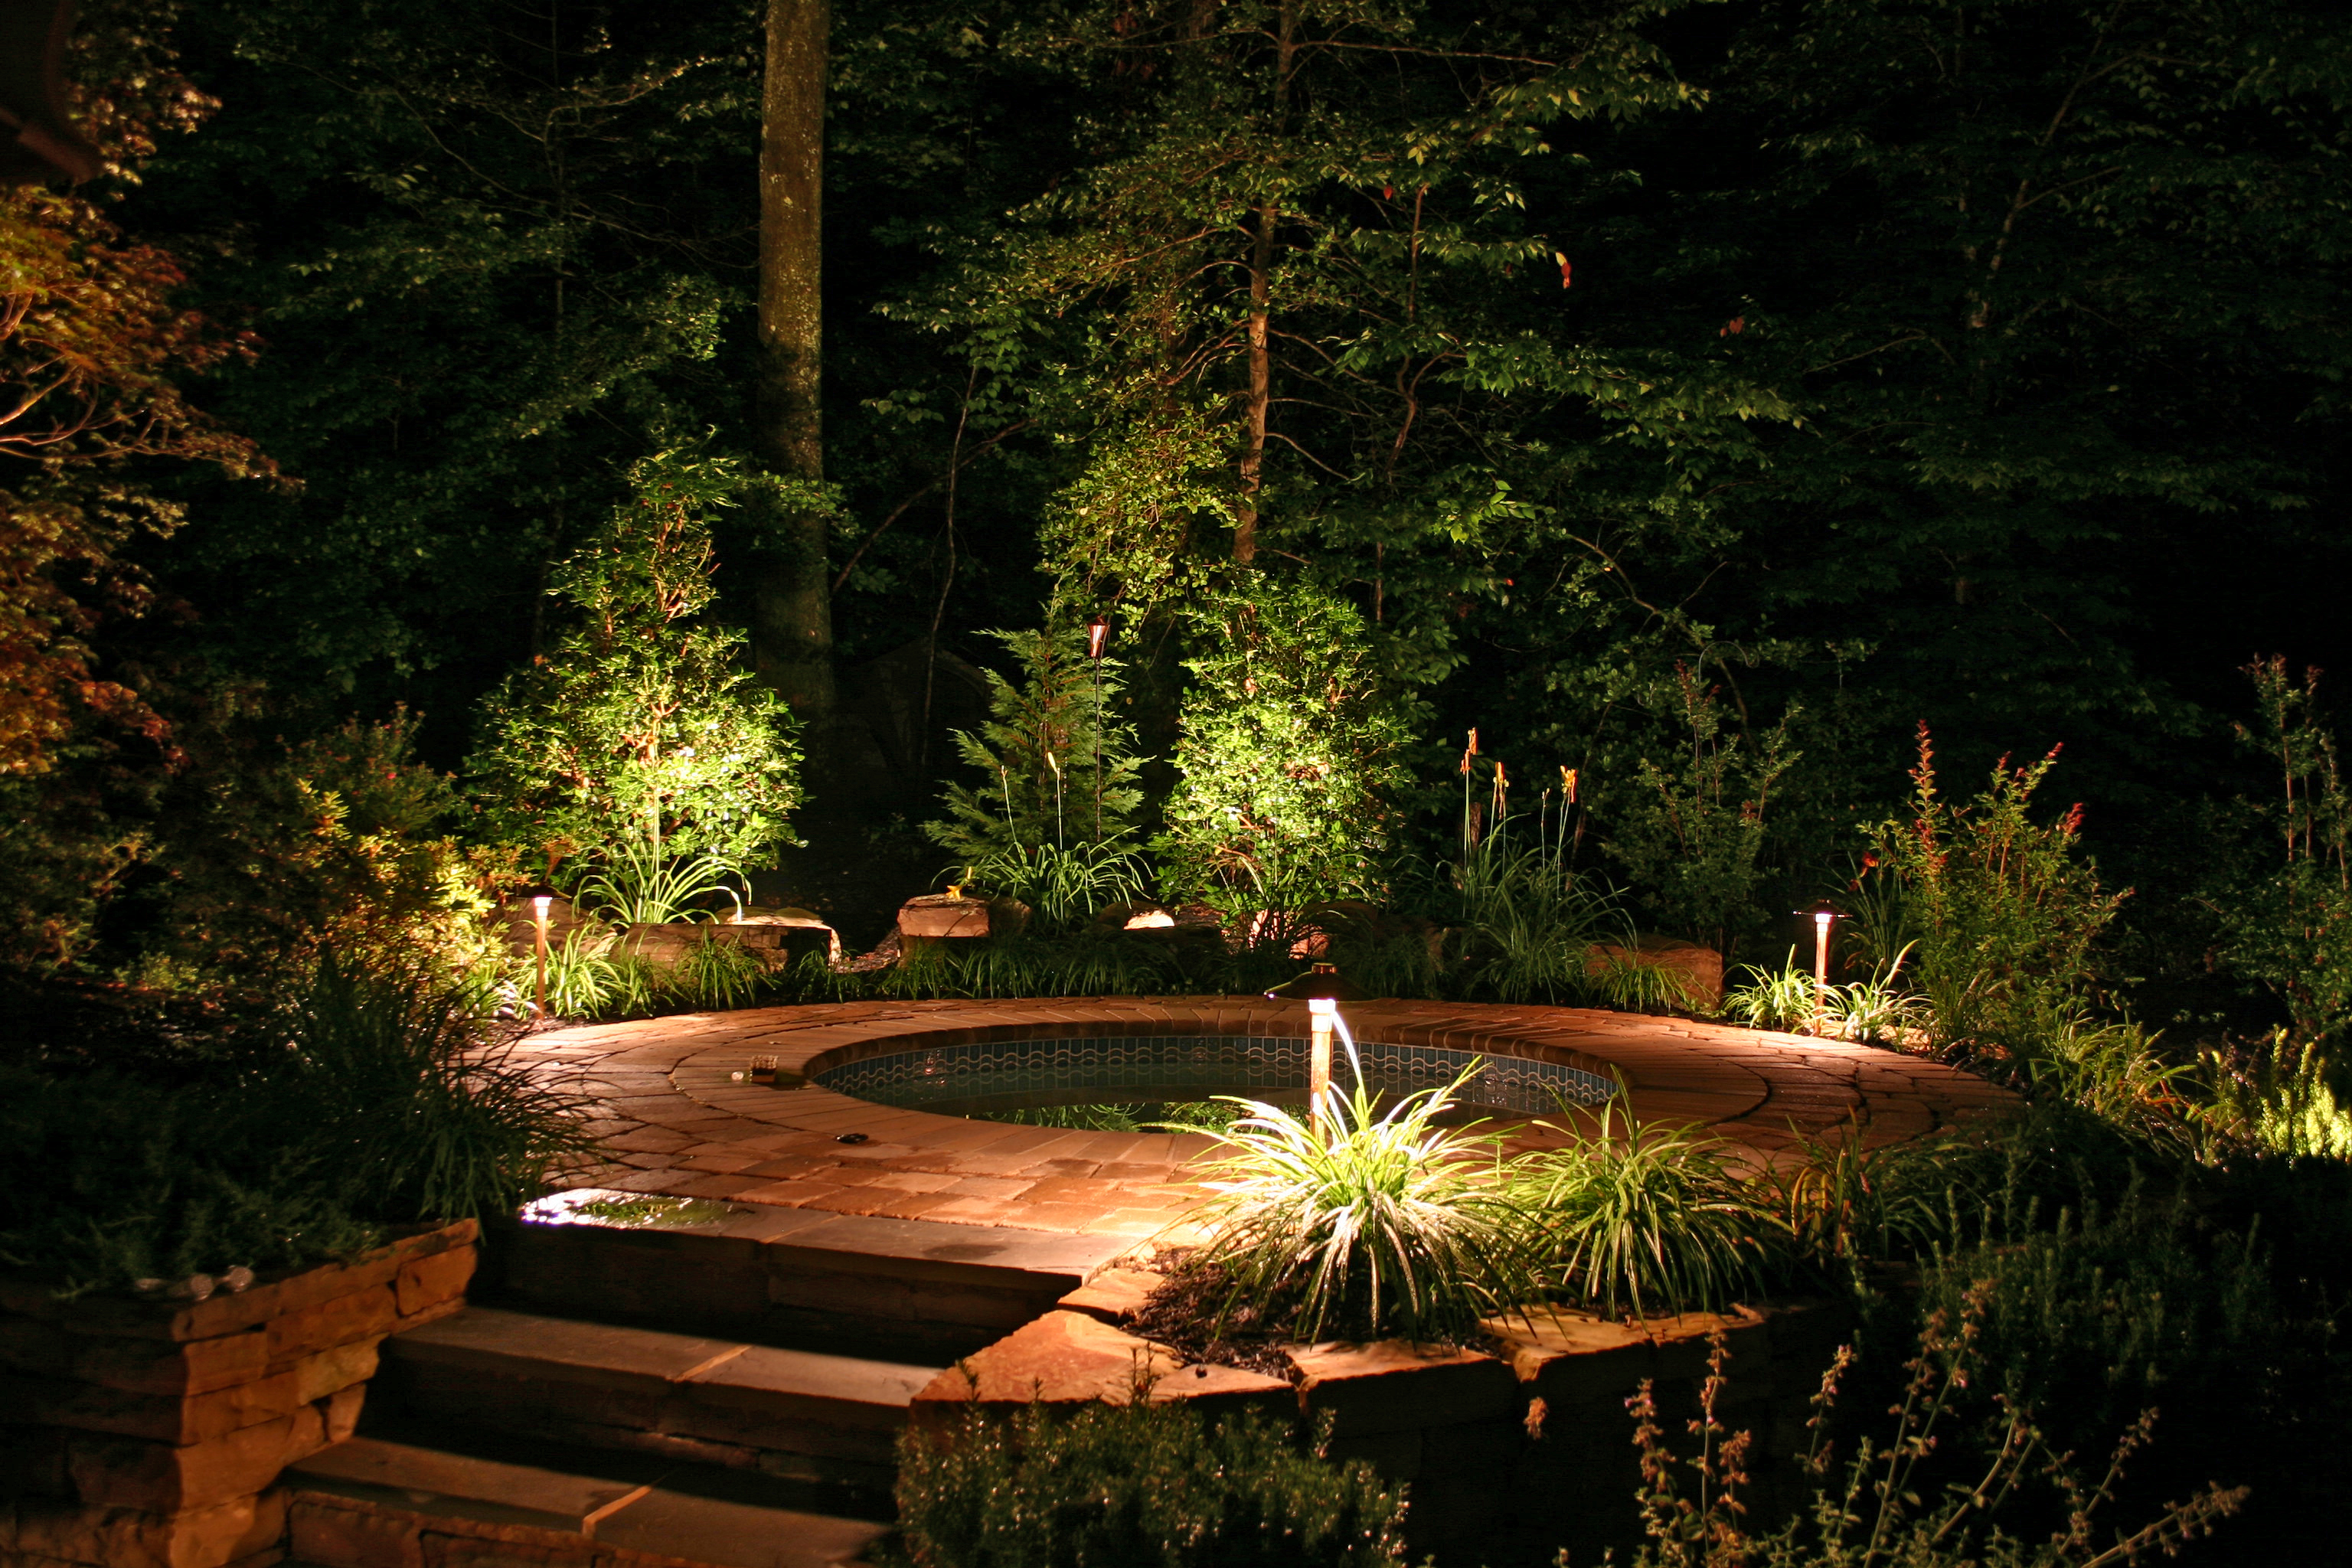 Garten Beleuchtung Pool And Jacuzzi Steps Propery Lit By Outdoor Lighting